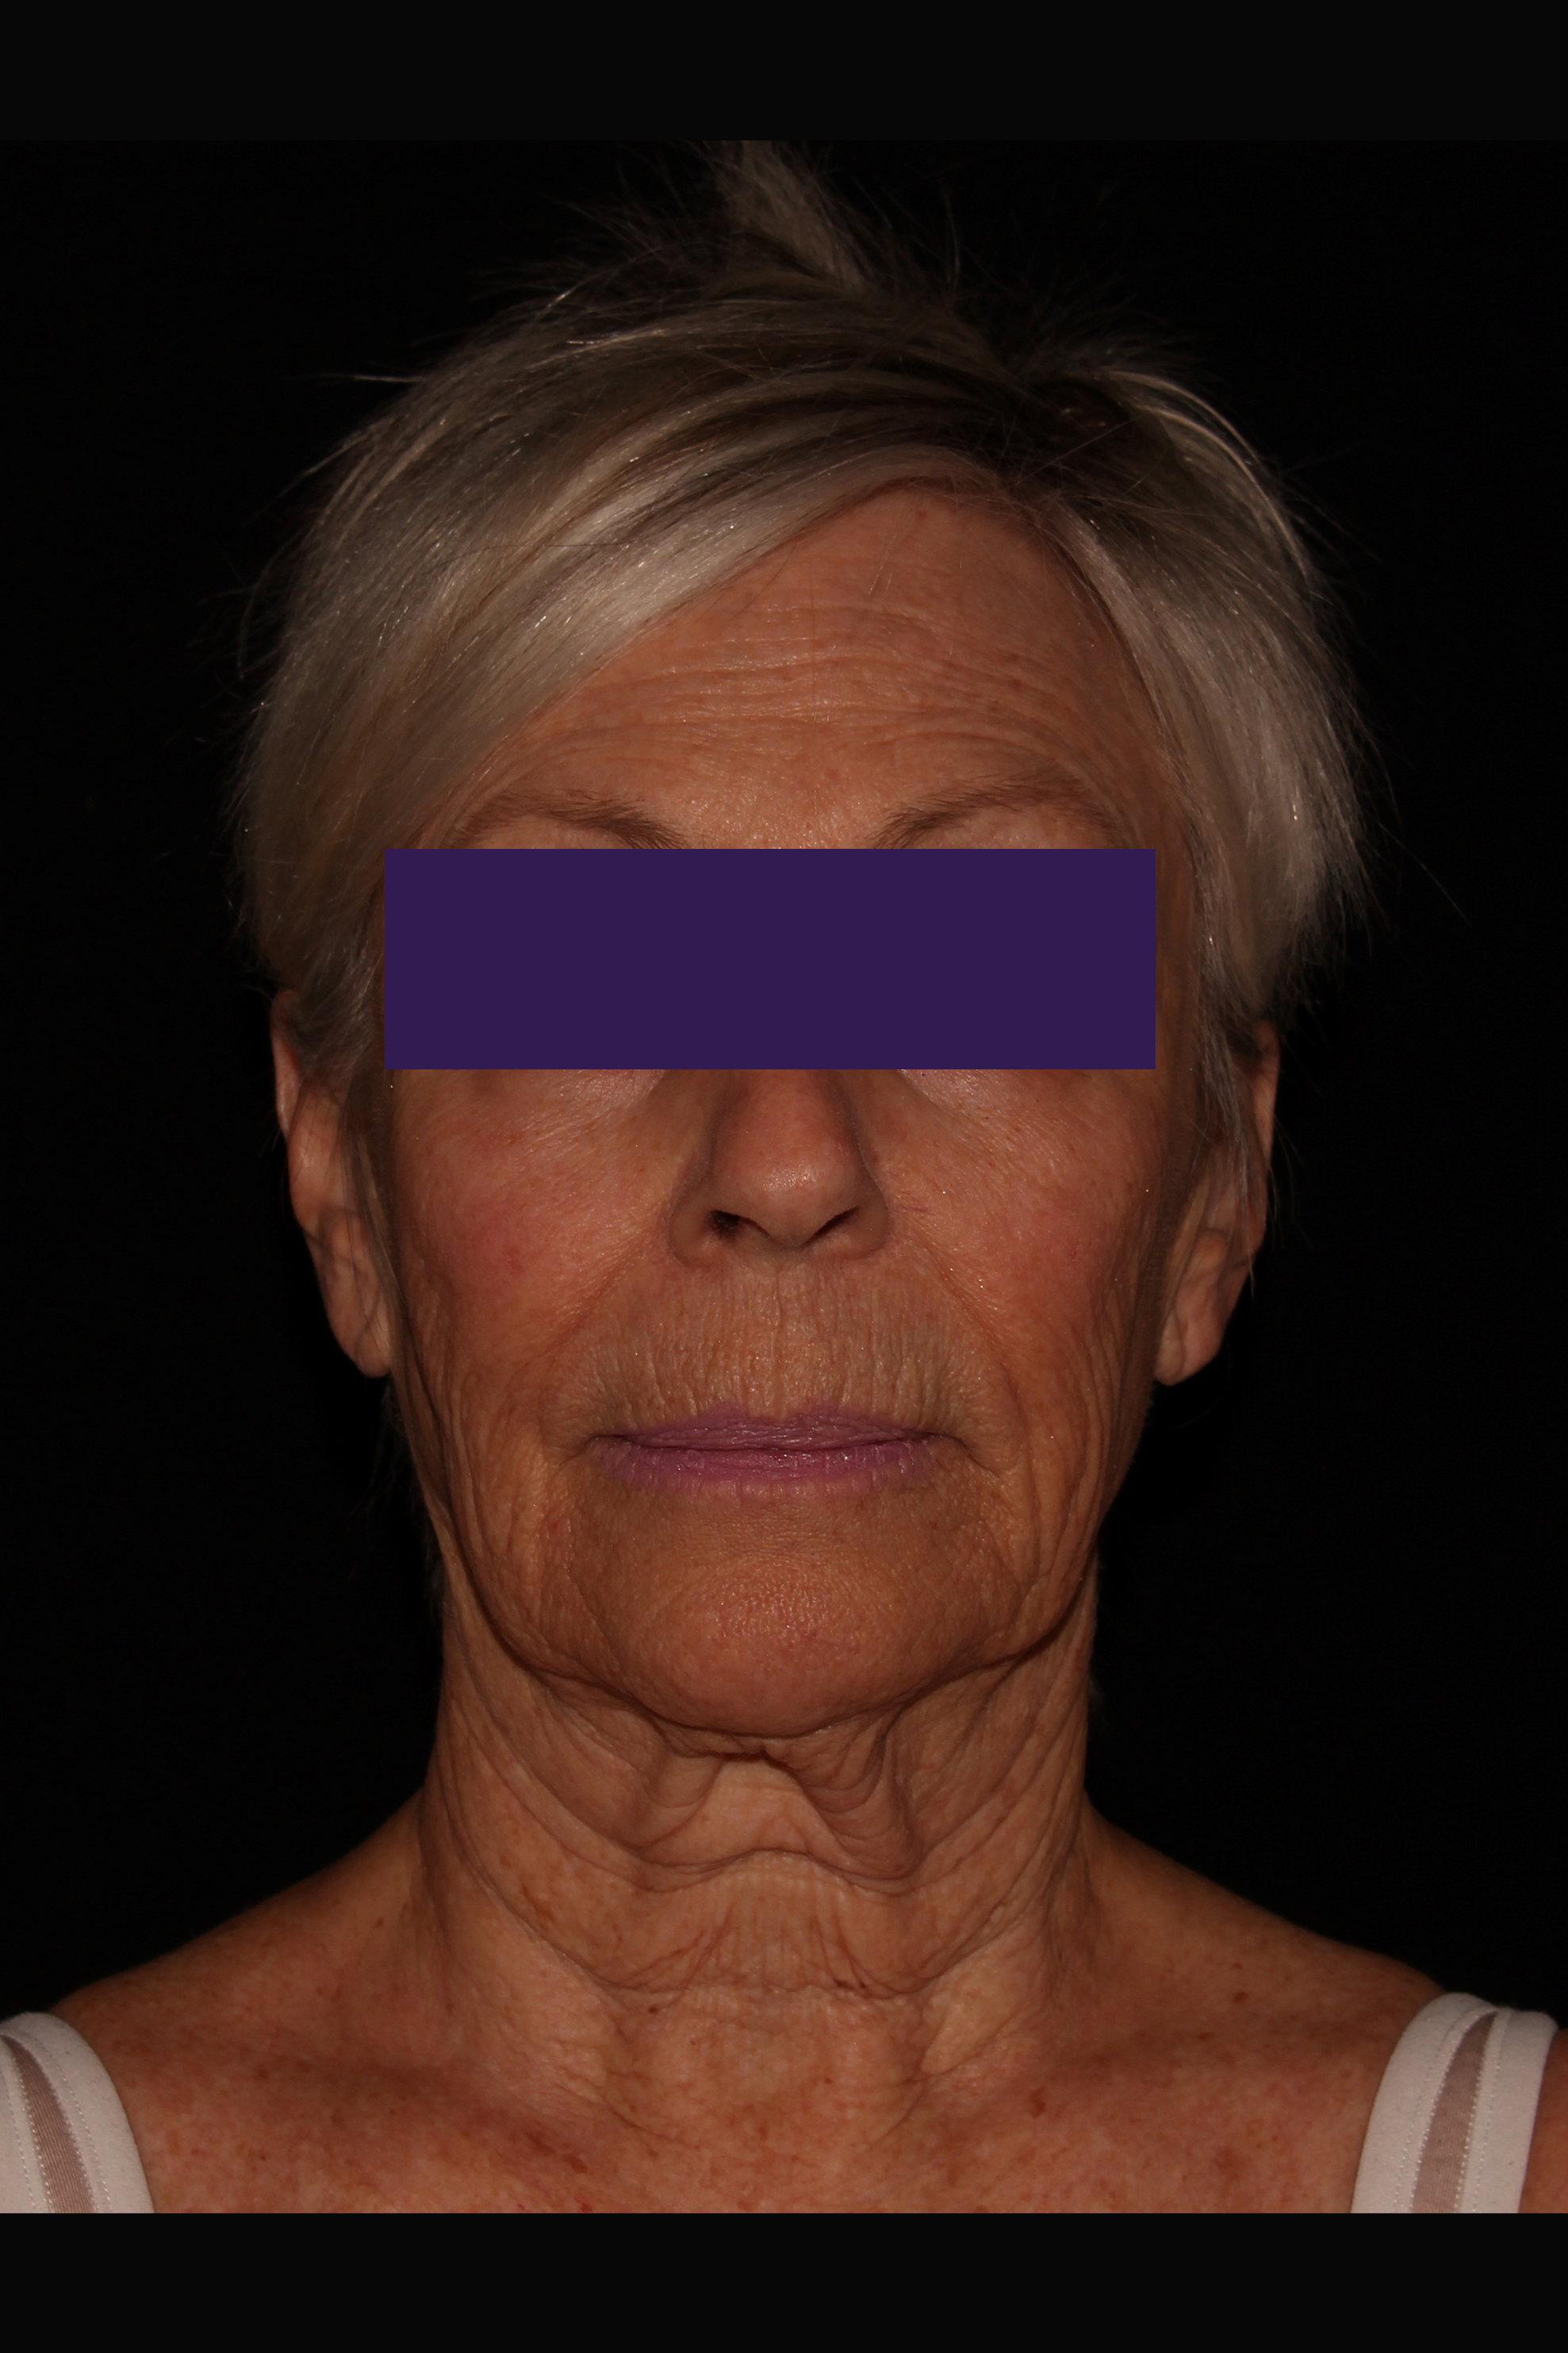 Before Facelift - Facelift & Necklift